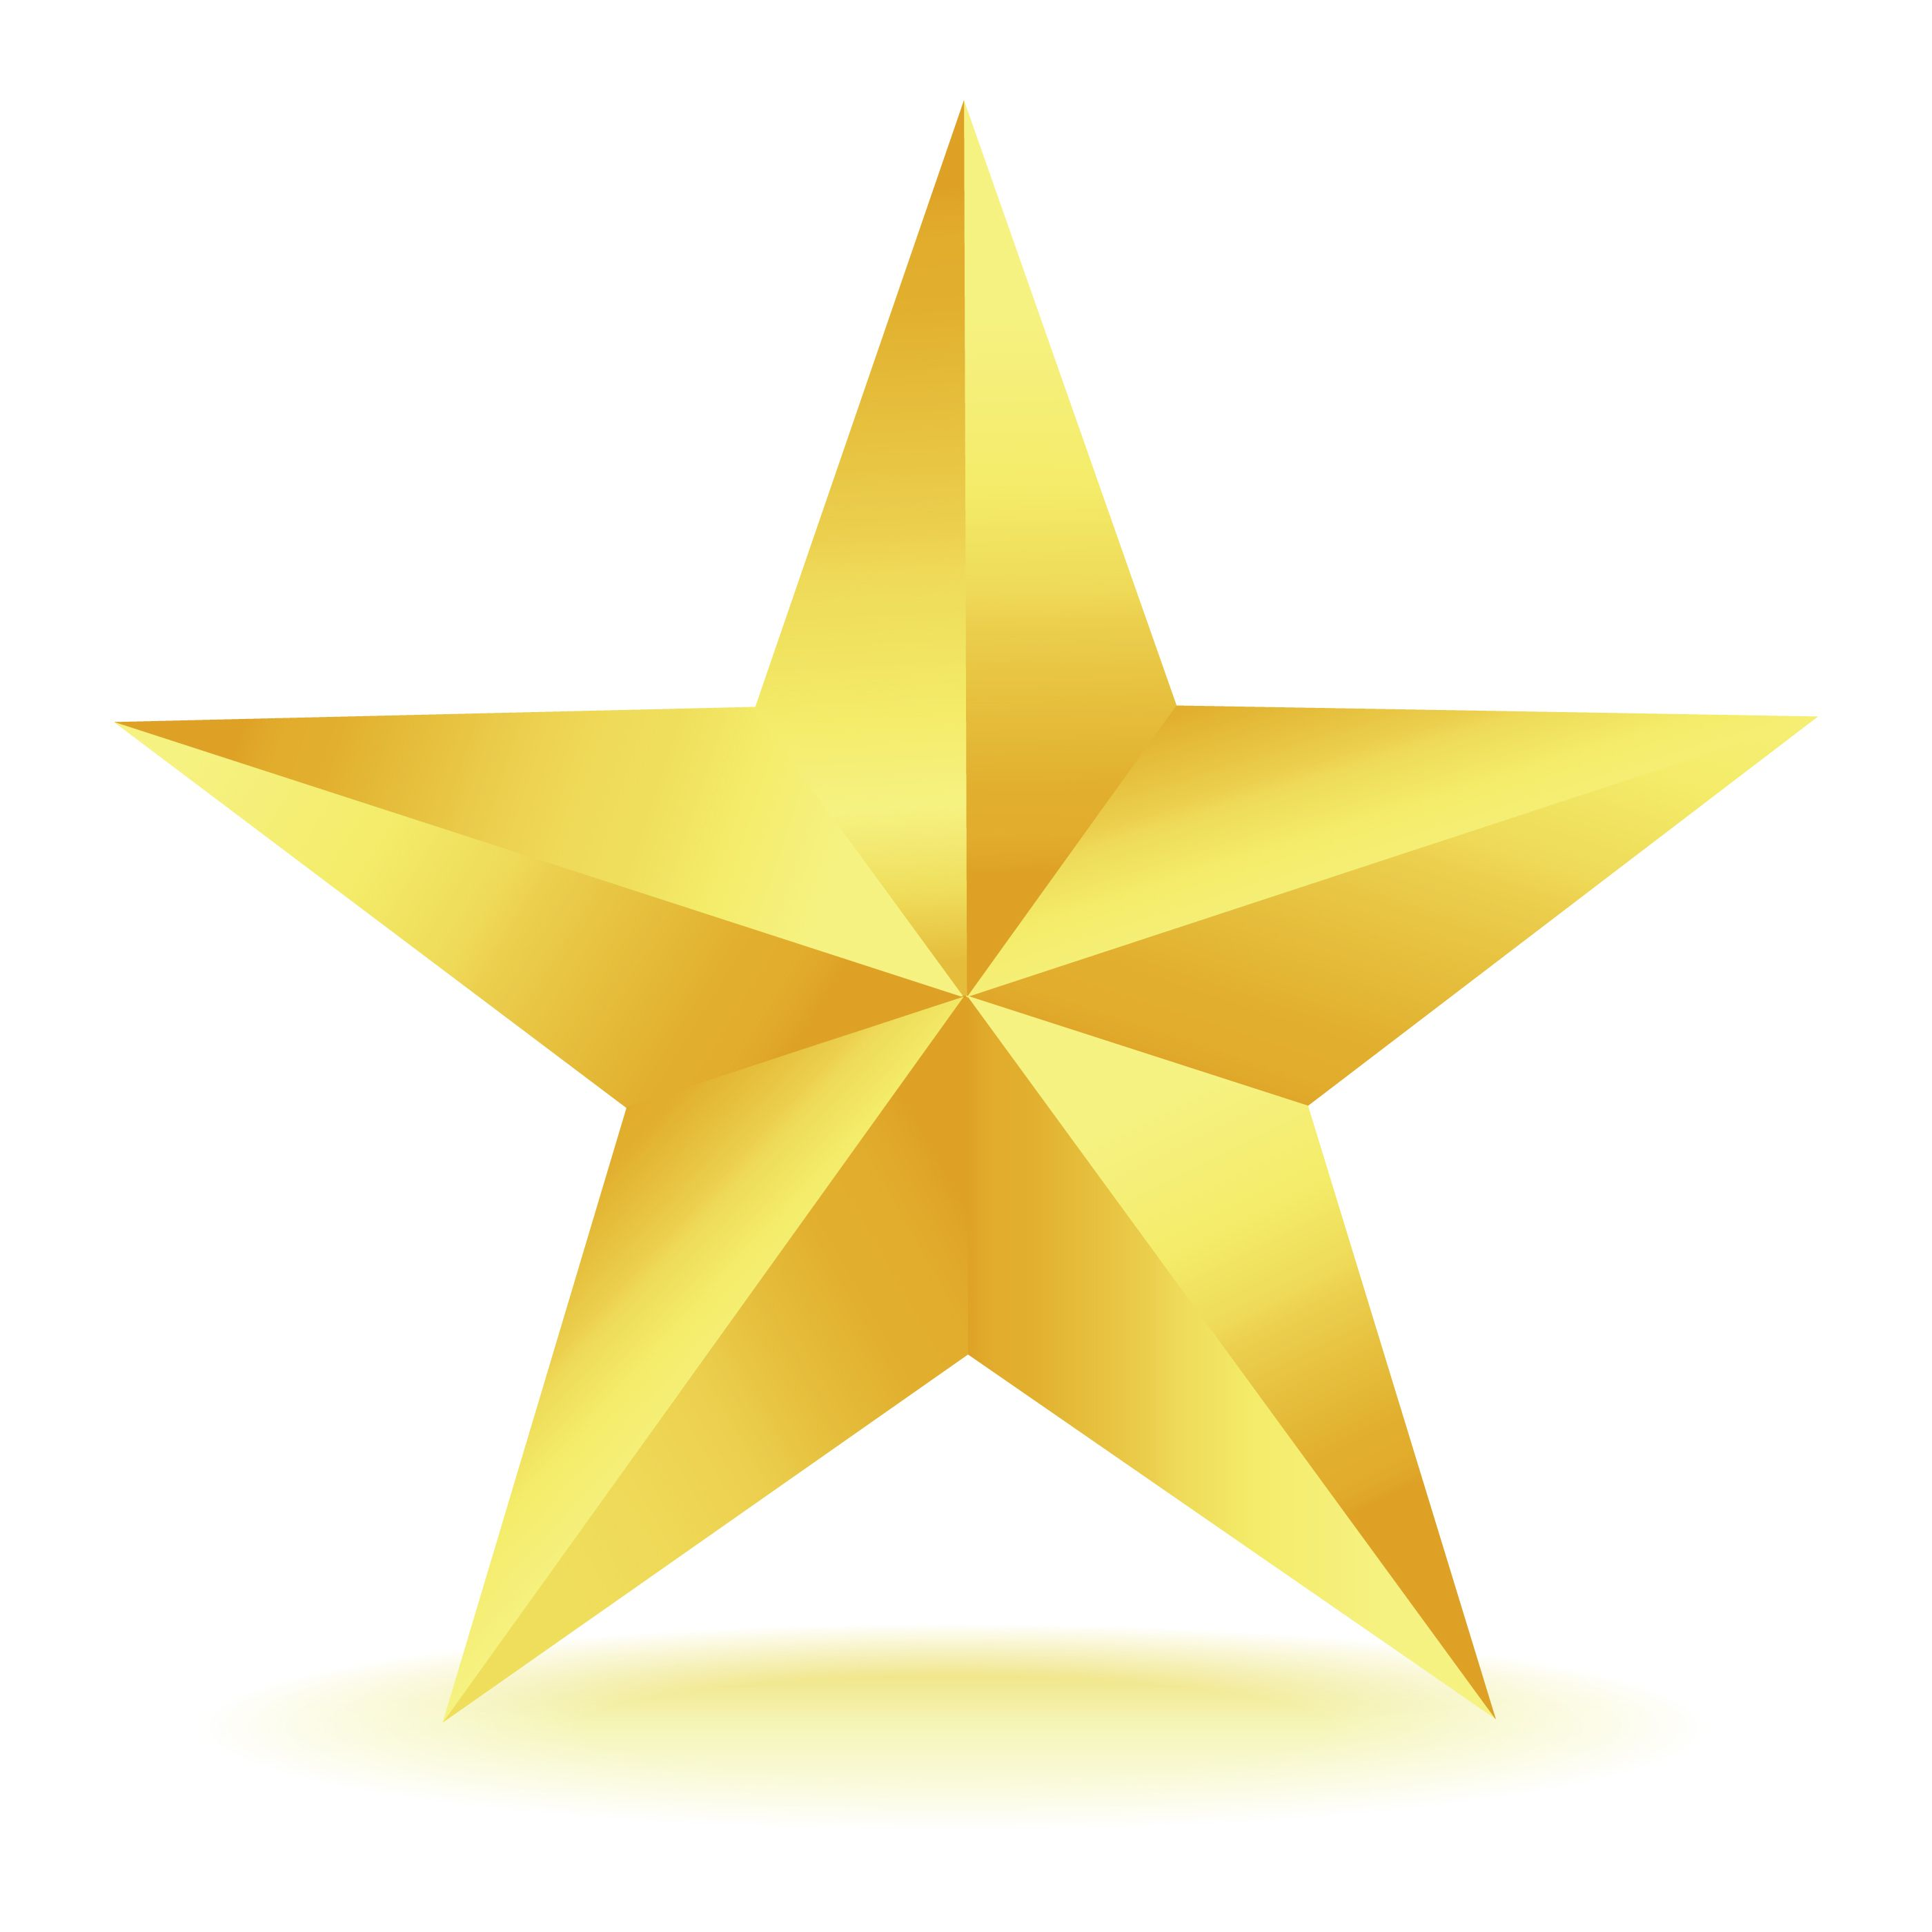 picture of gold star clipart best sewing pinterest star rh pinterest com gold star clipart no background gold star clip art images